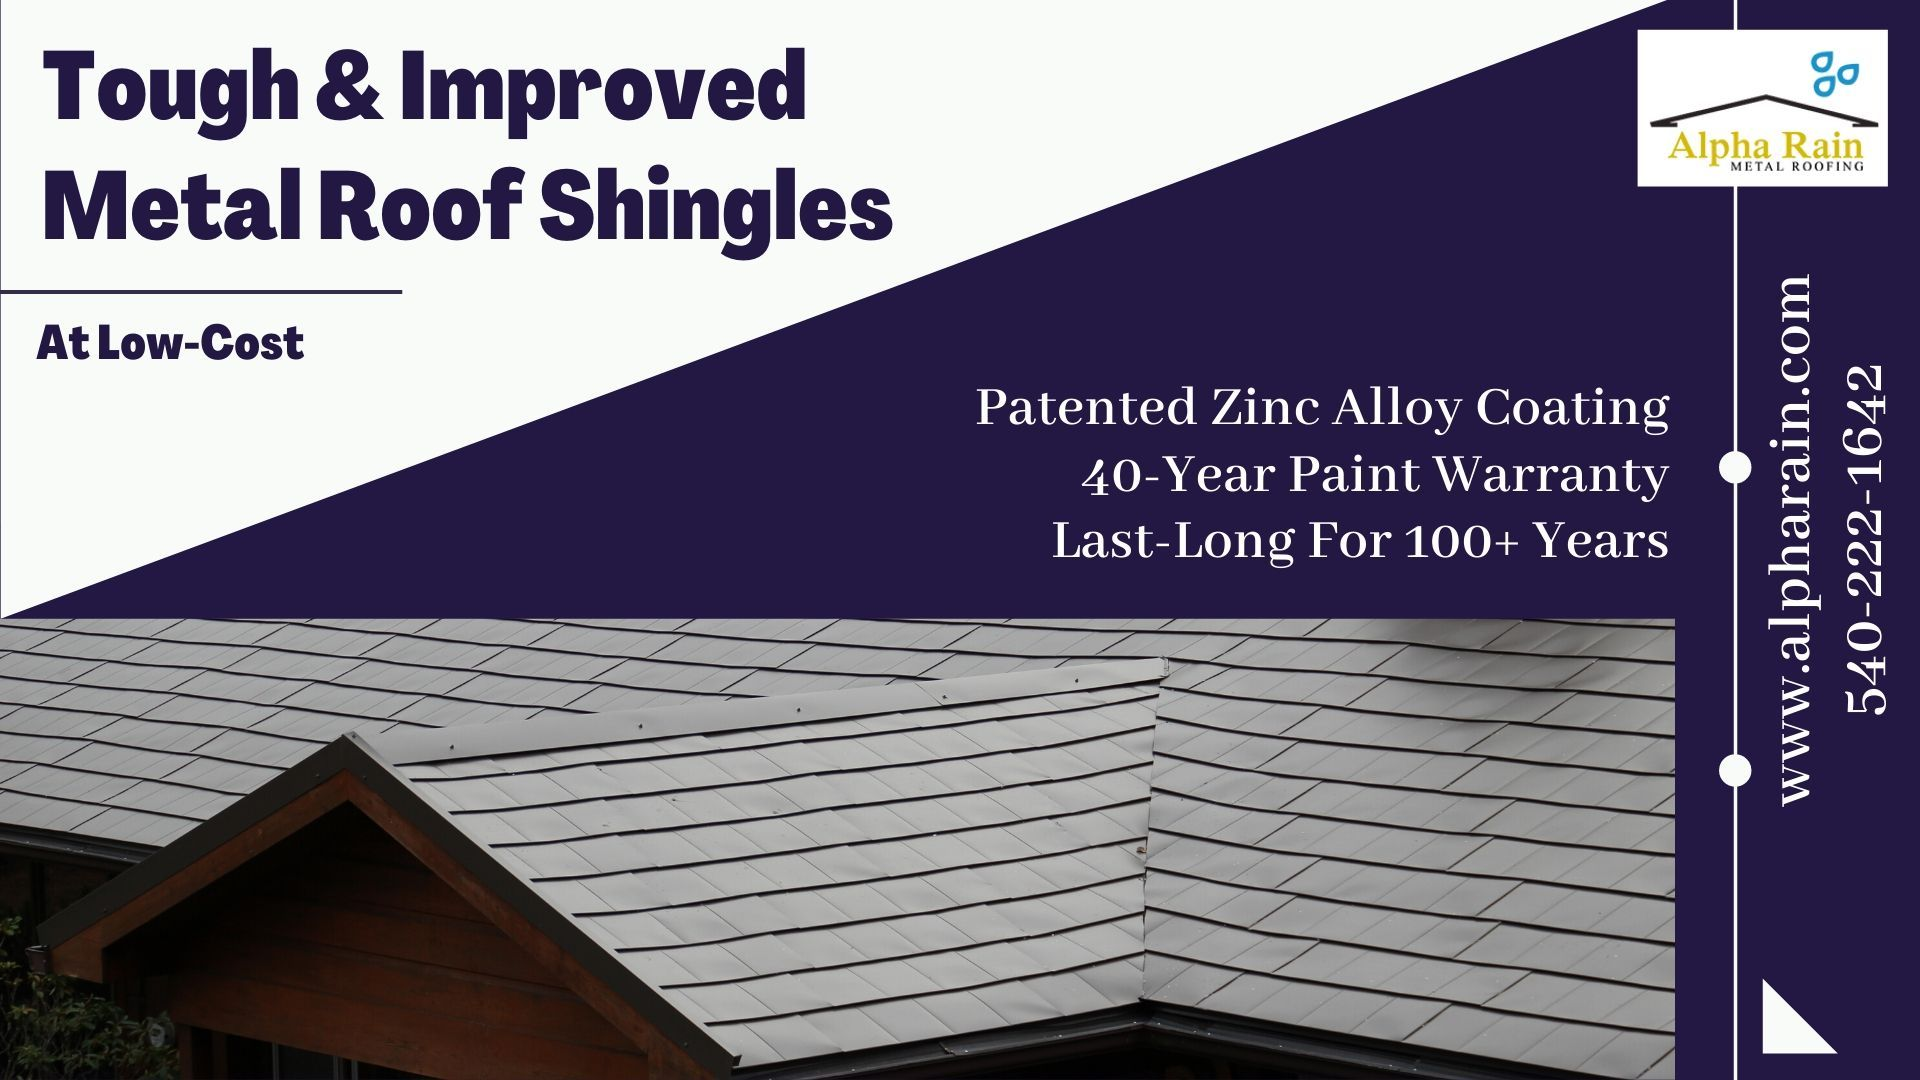 Can Metal Shingles Beat The Installation Price Of Asphalt In 2020 Metal Shingles Metal Shingle Roof Shingling